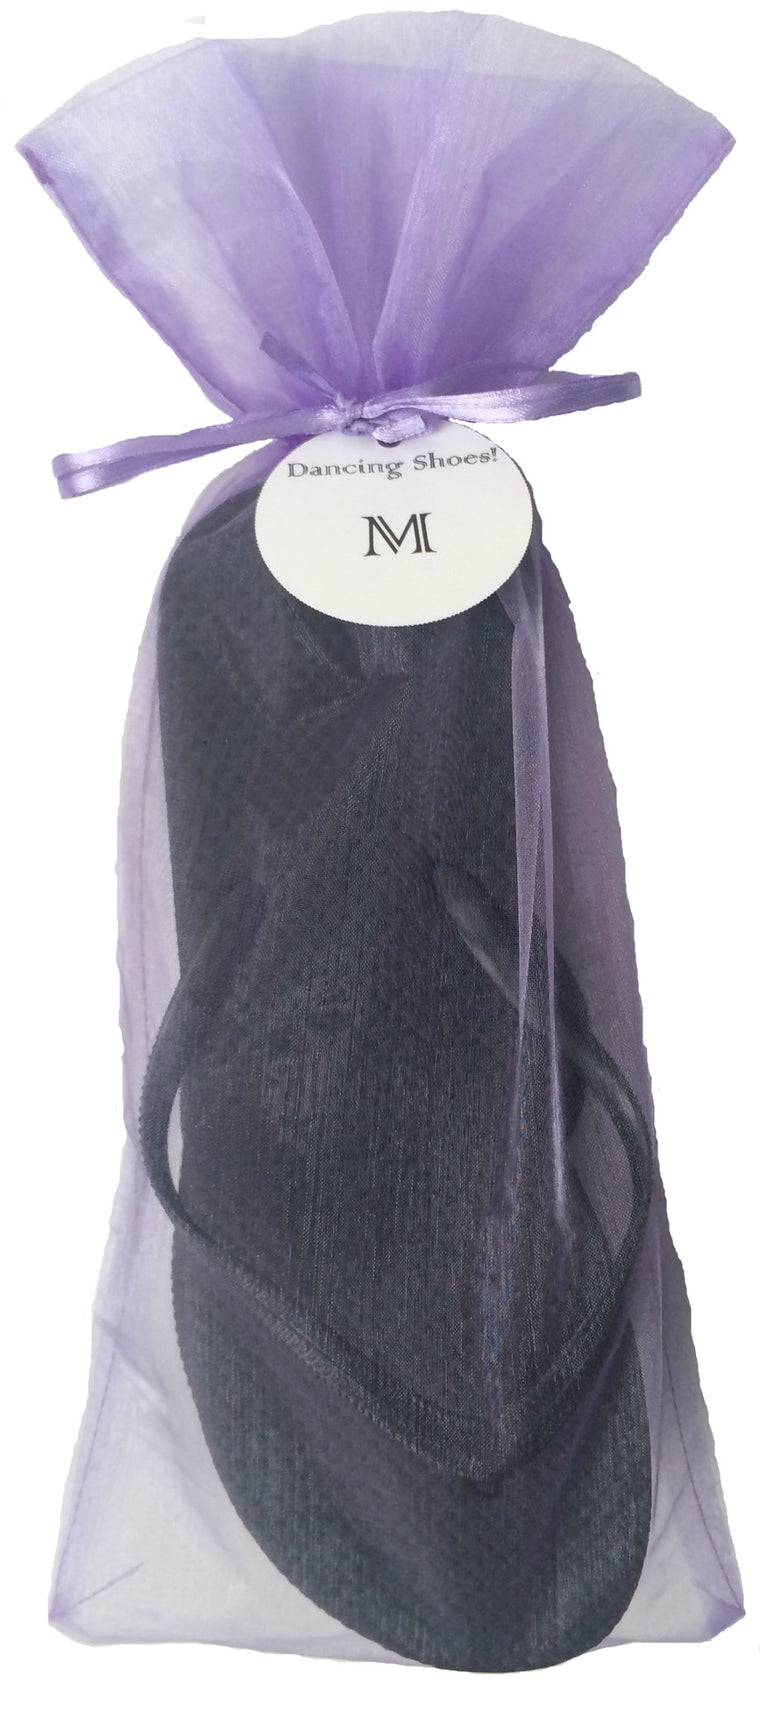 ee92be635eeb6 Classic Black Flip Flop with Lavender Organza Bag - My Party Saver. Your  Guest s Best